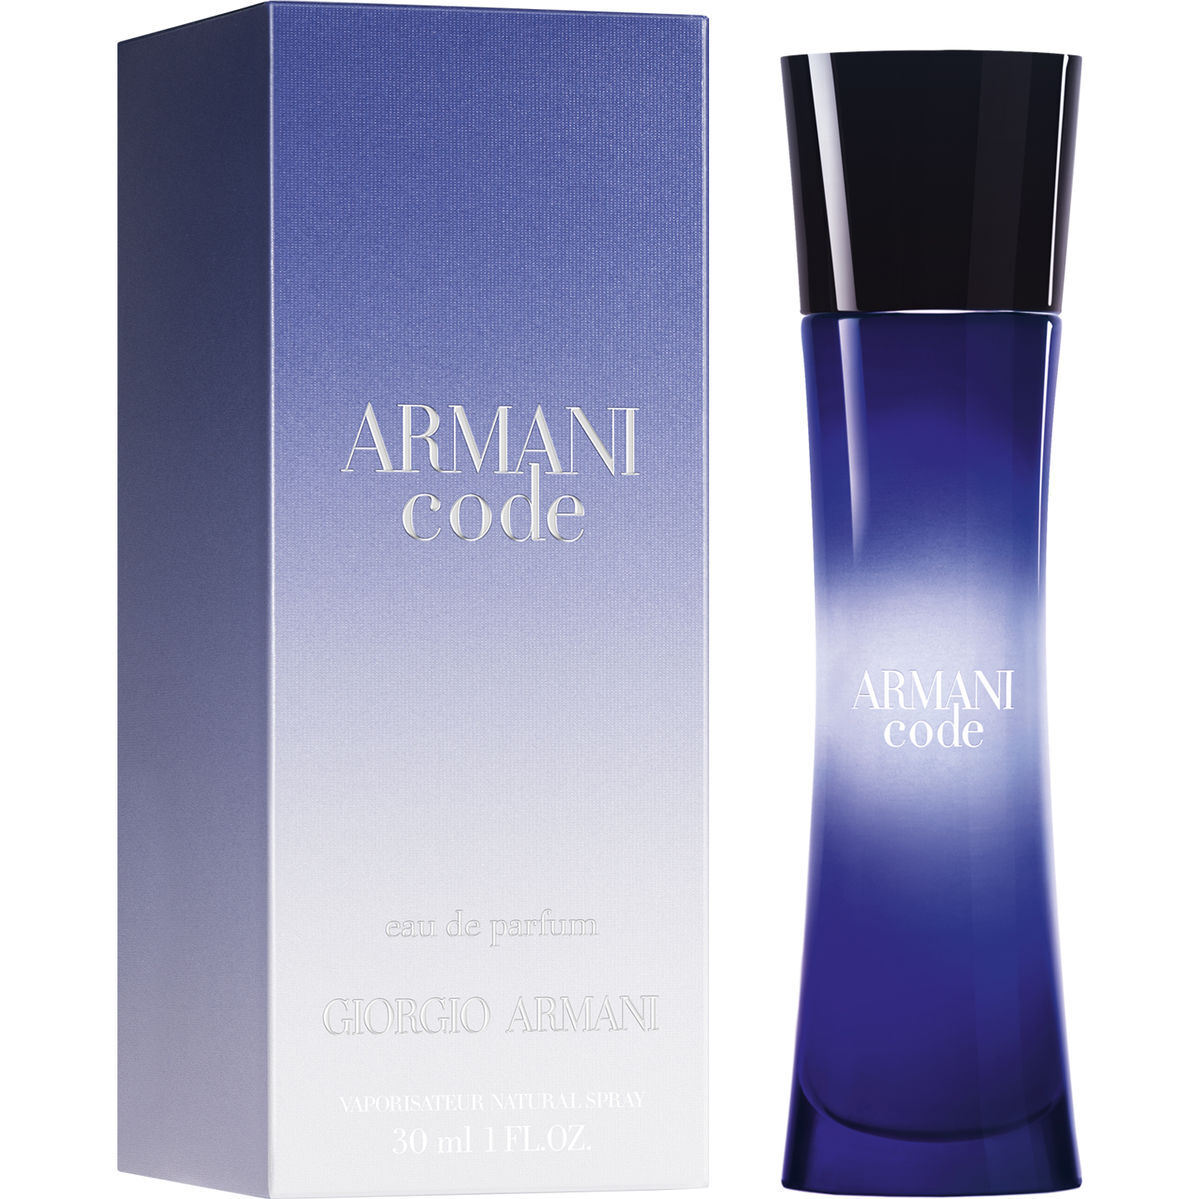 giorgio armani code femme eau de parfum karstadt online. Black Bedroom Furniture Sets. Home Design Ideas